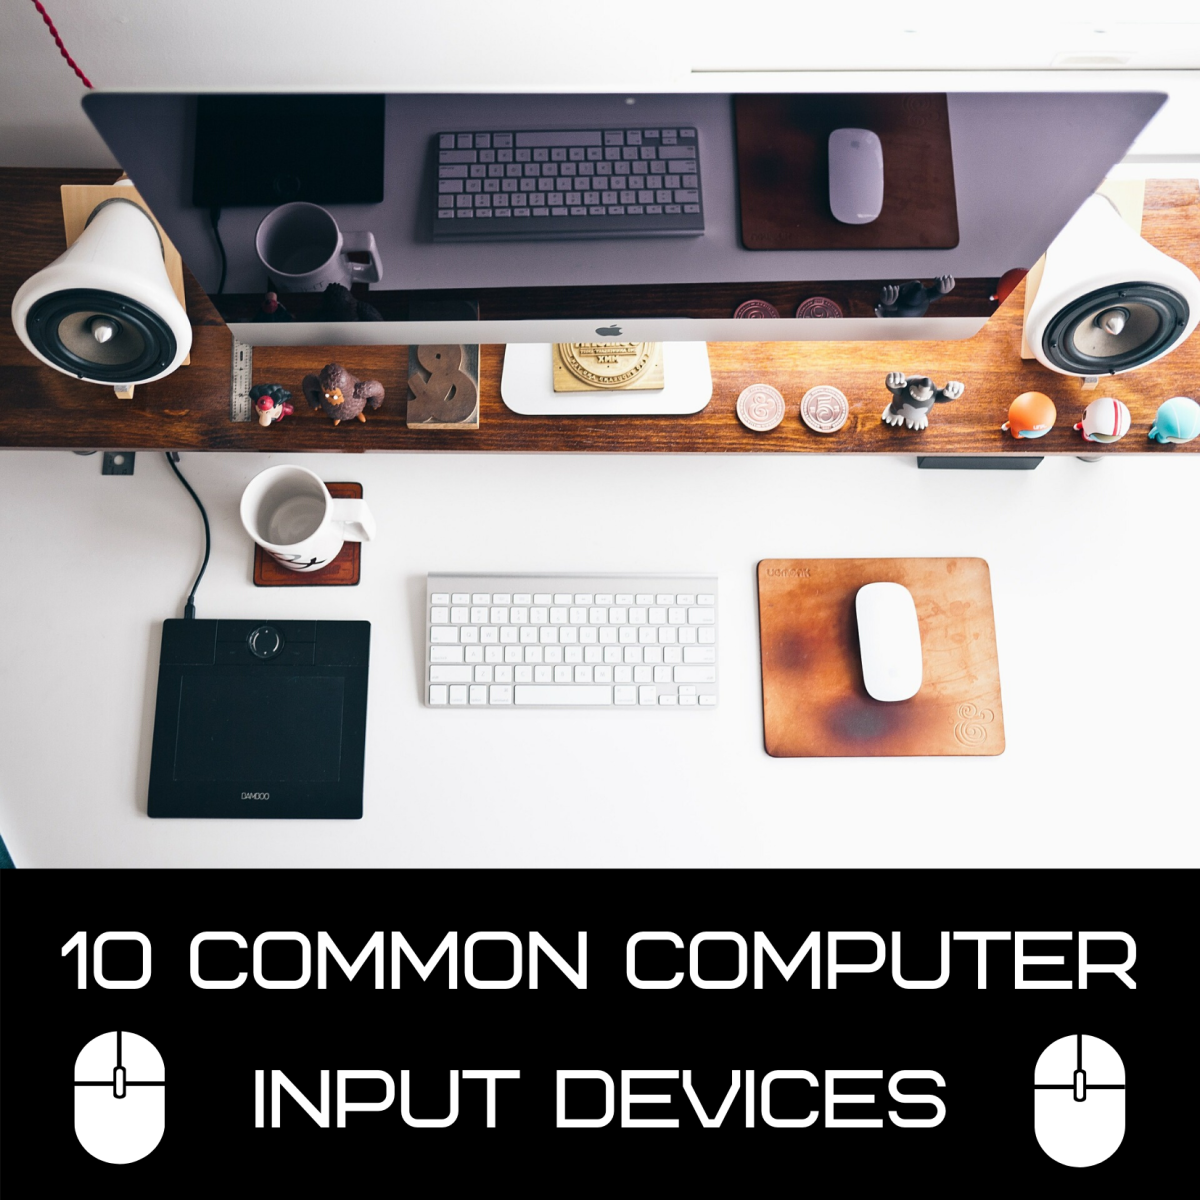 Computer Basics: What is an Input Device? 10 Examples